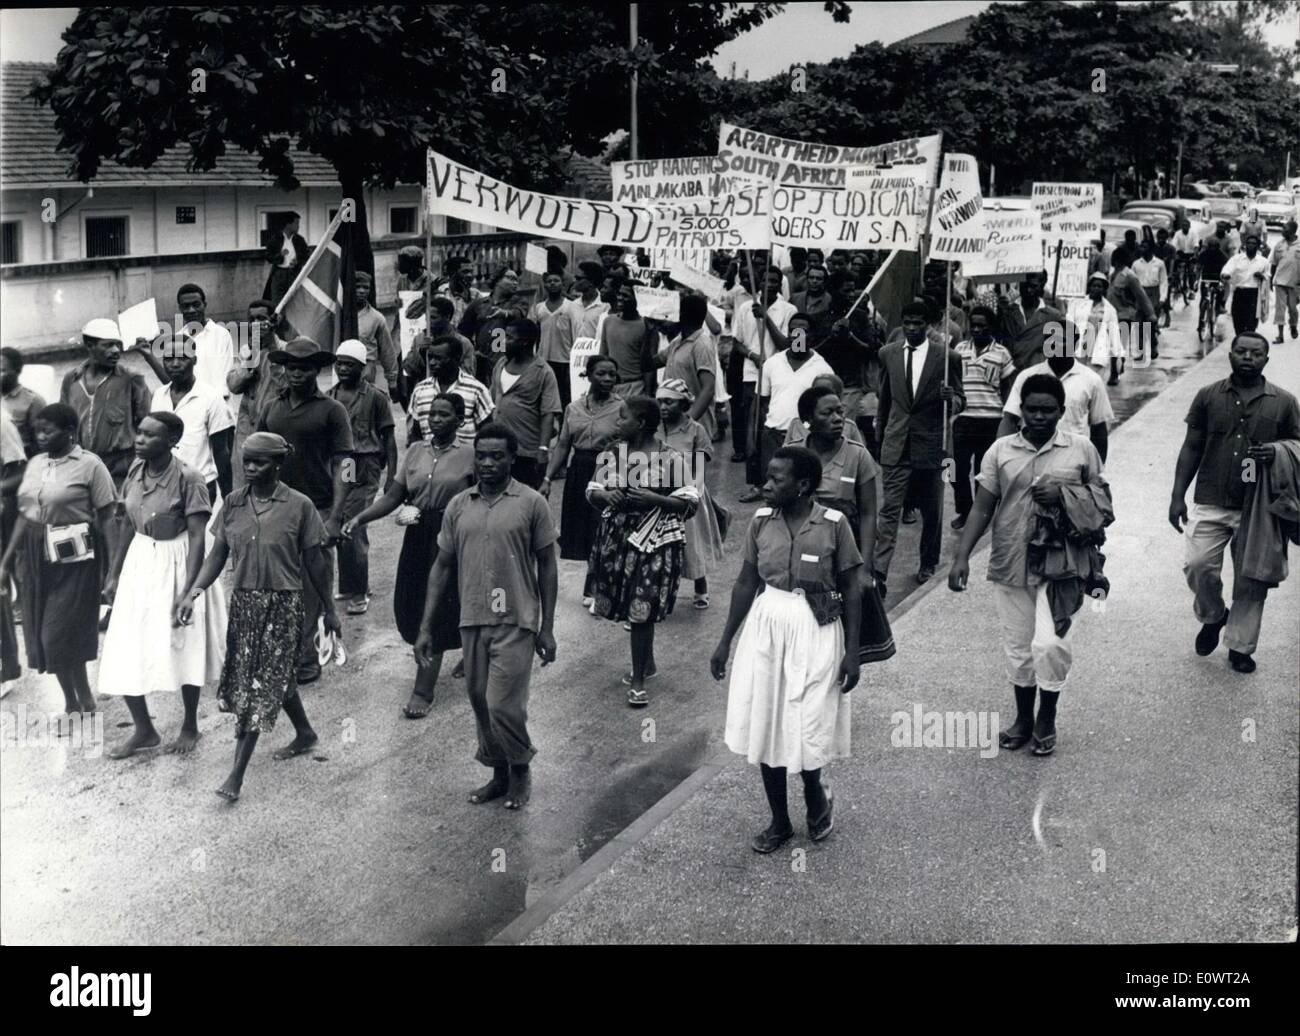 Apr. 04, 1964 - South Africans demonstrate against apartheid in Dar Es Salaam: About two hundred members of various - Stock Image